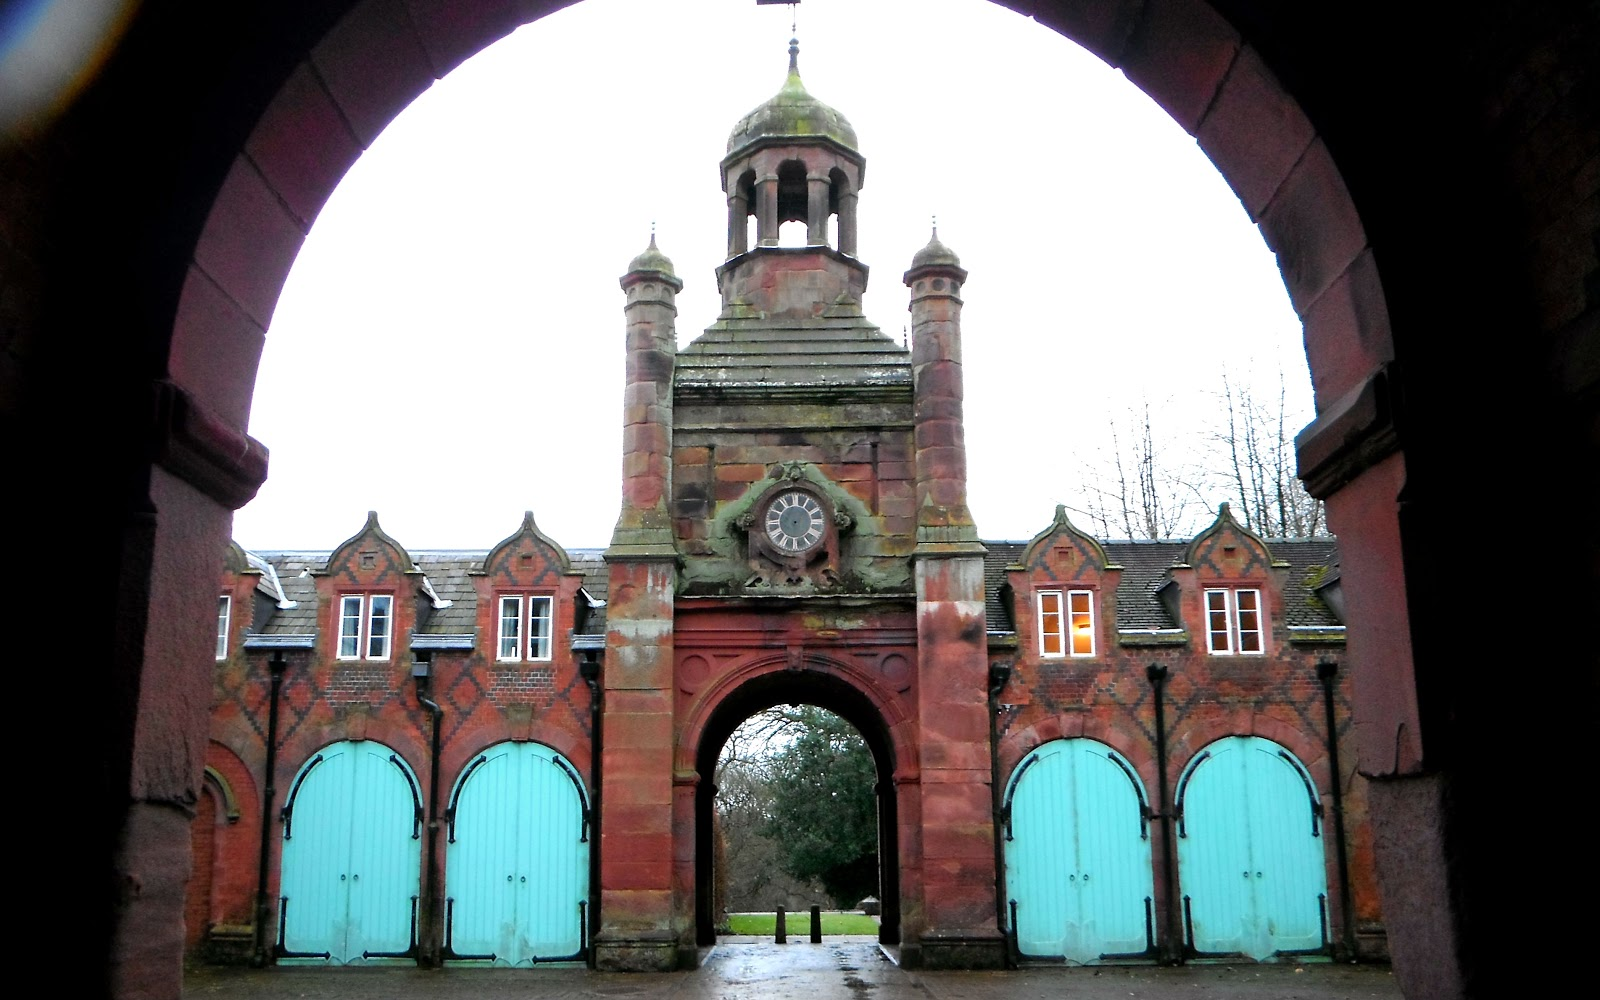 The University of Keele Clock House